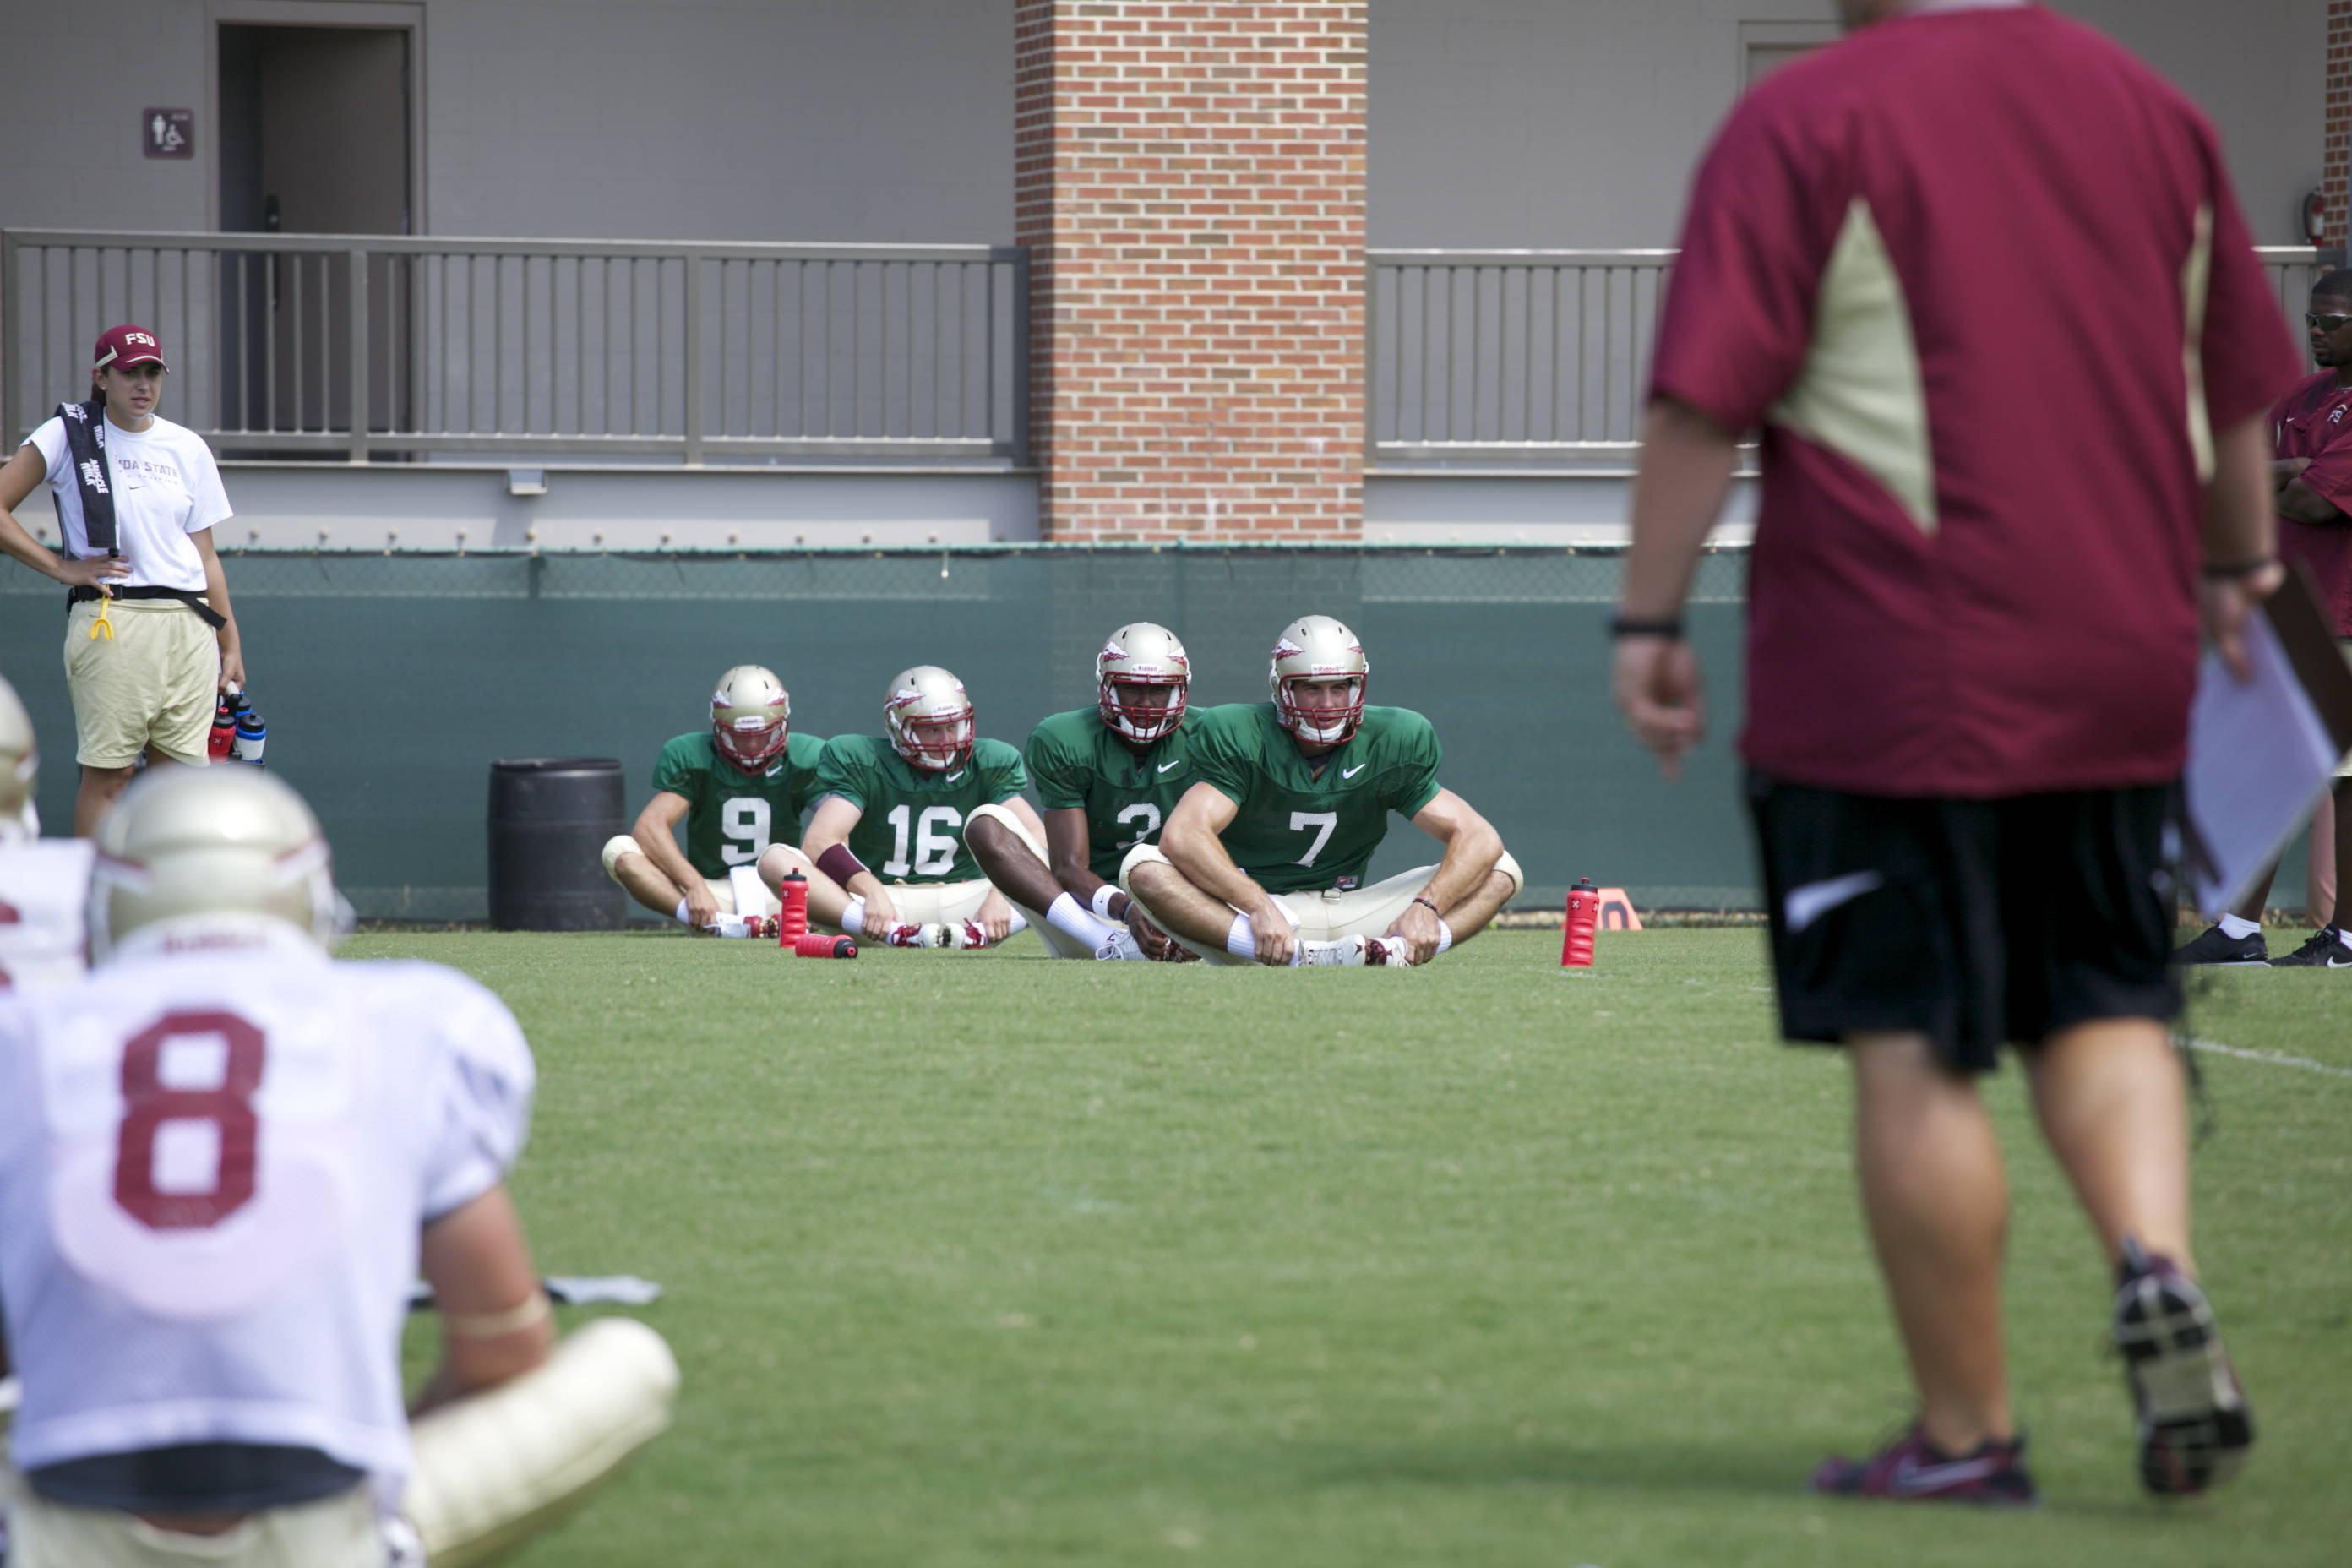 Quarterbacks stretching before practice